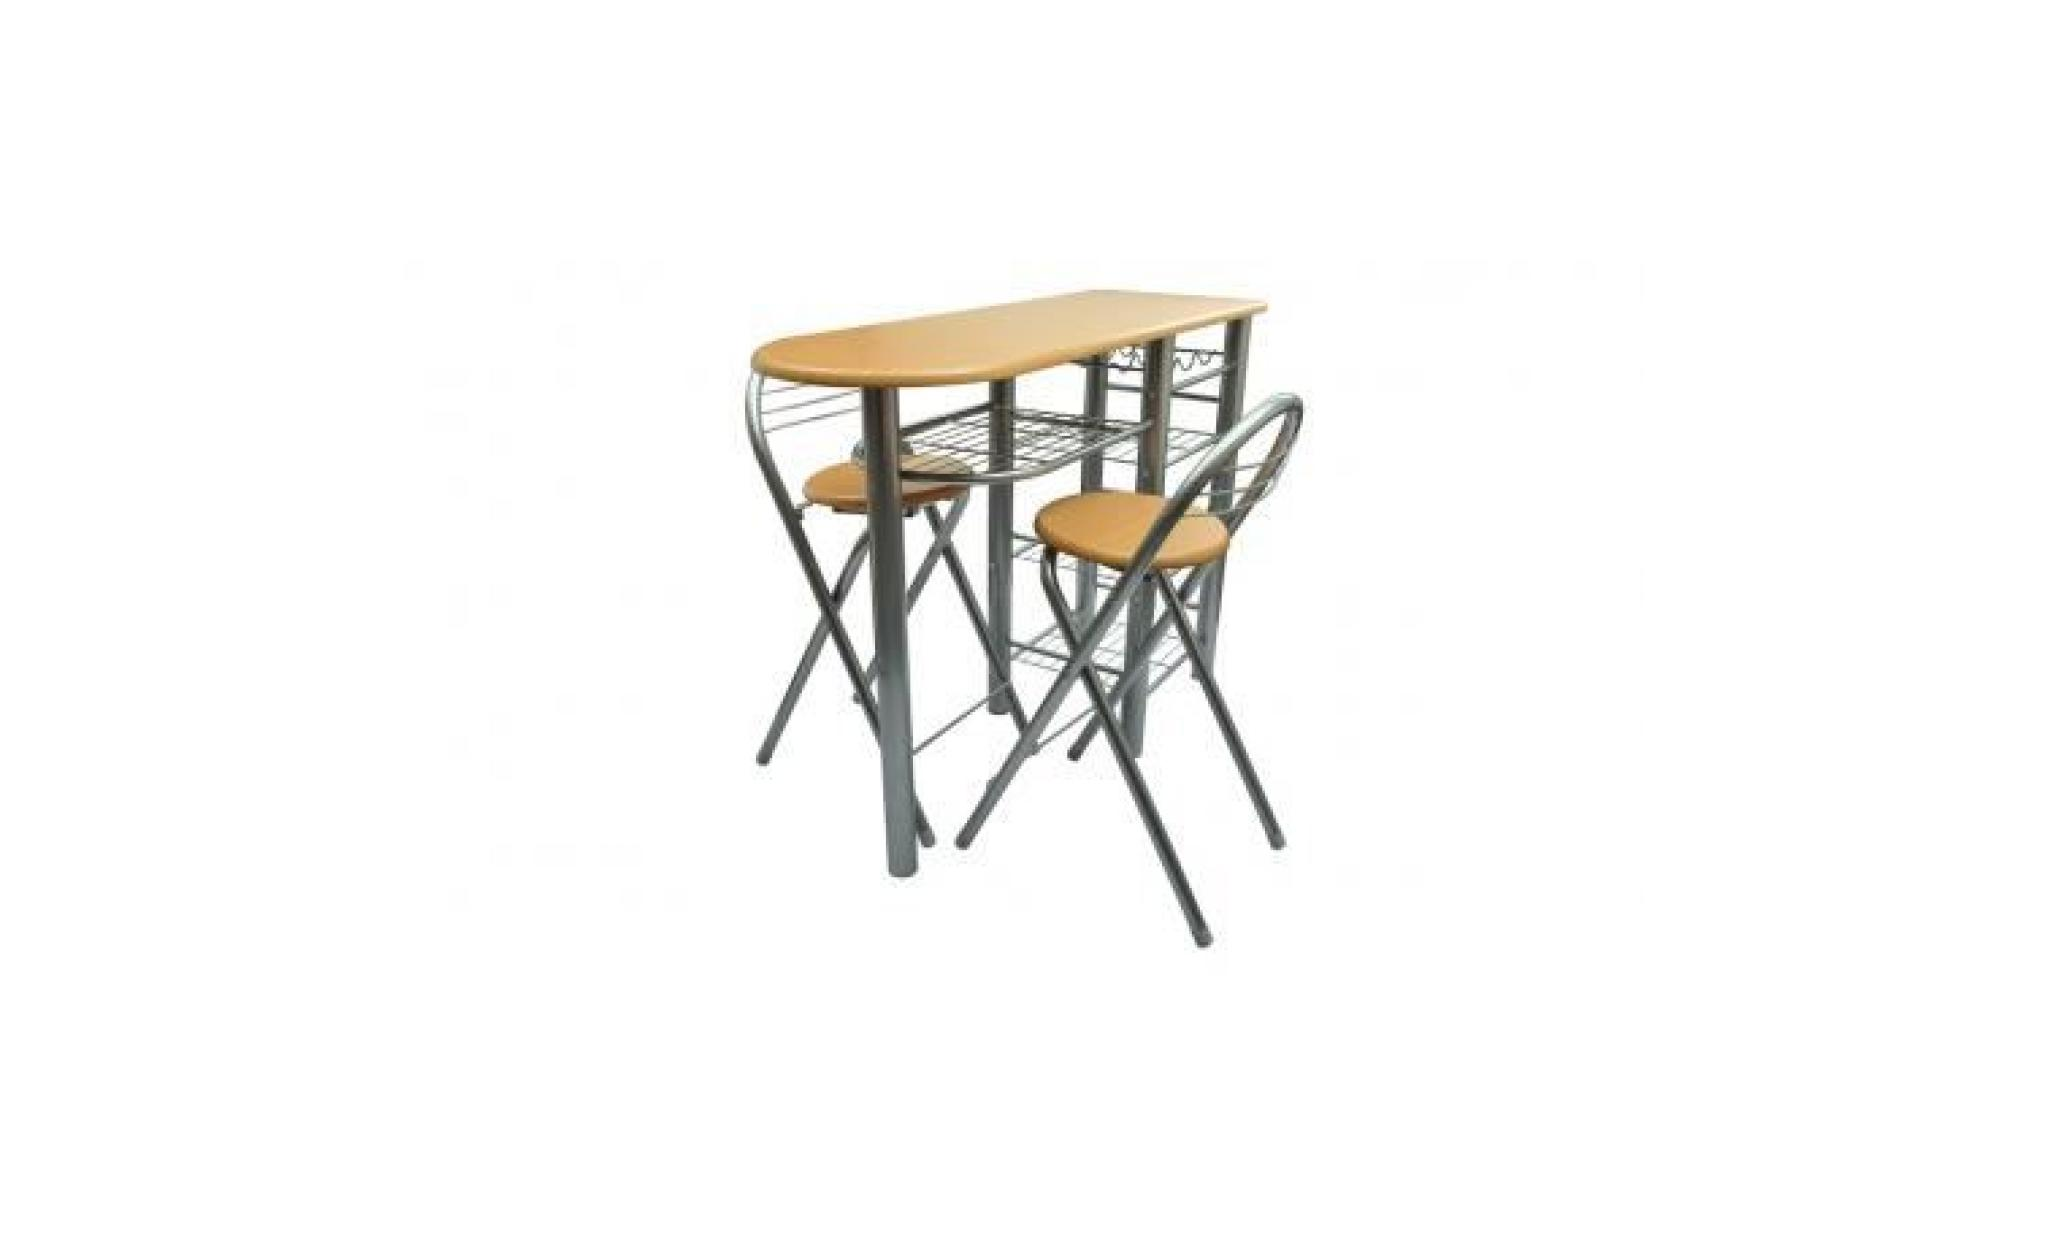 Ensemble table a manger et chaise pas cher home design - Table a manger chaise pas cher ...